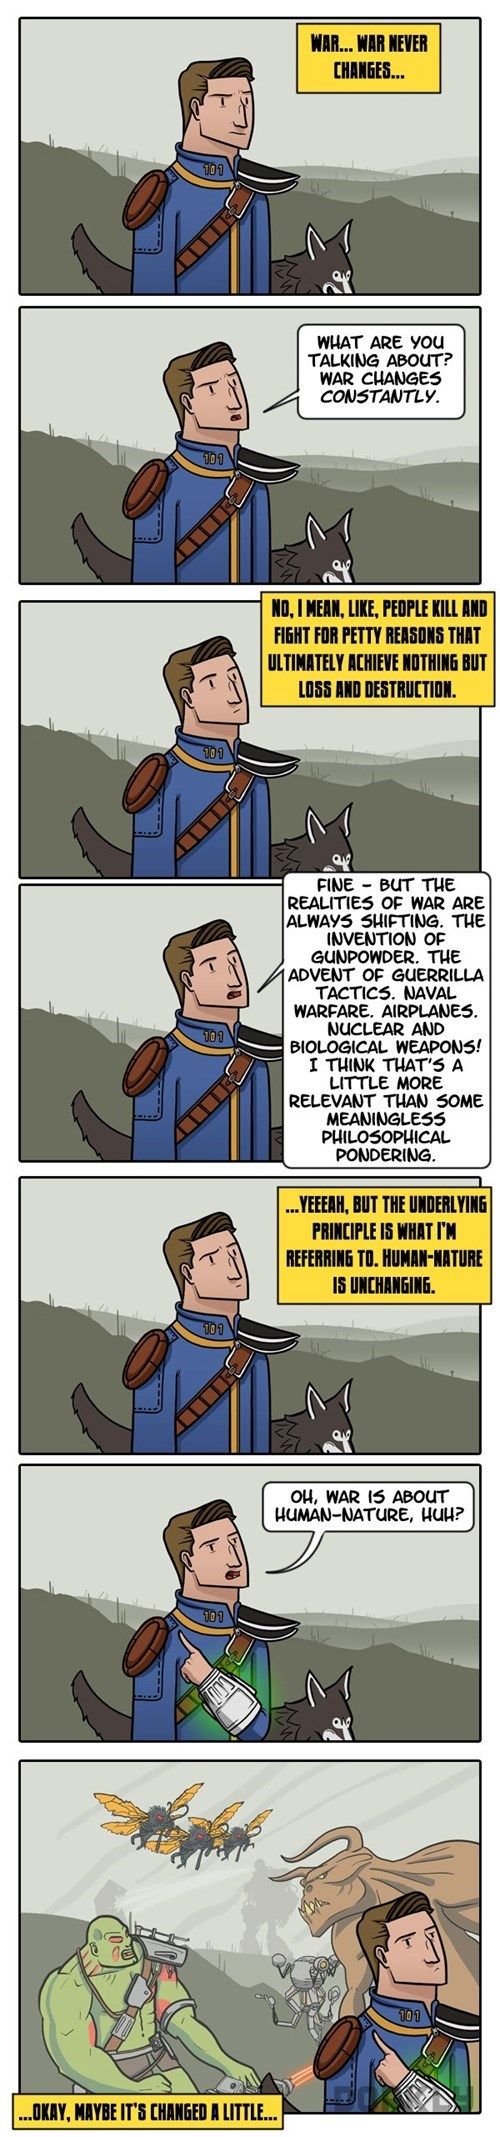 dorkly fallout video games - 7649544192